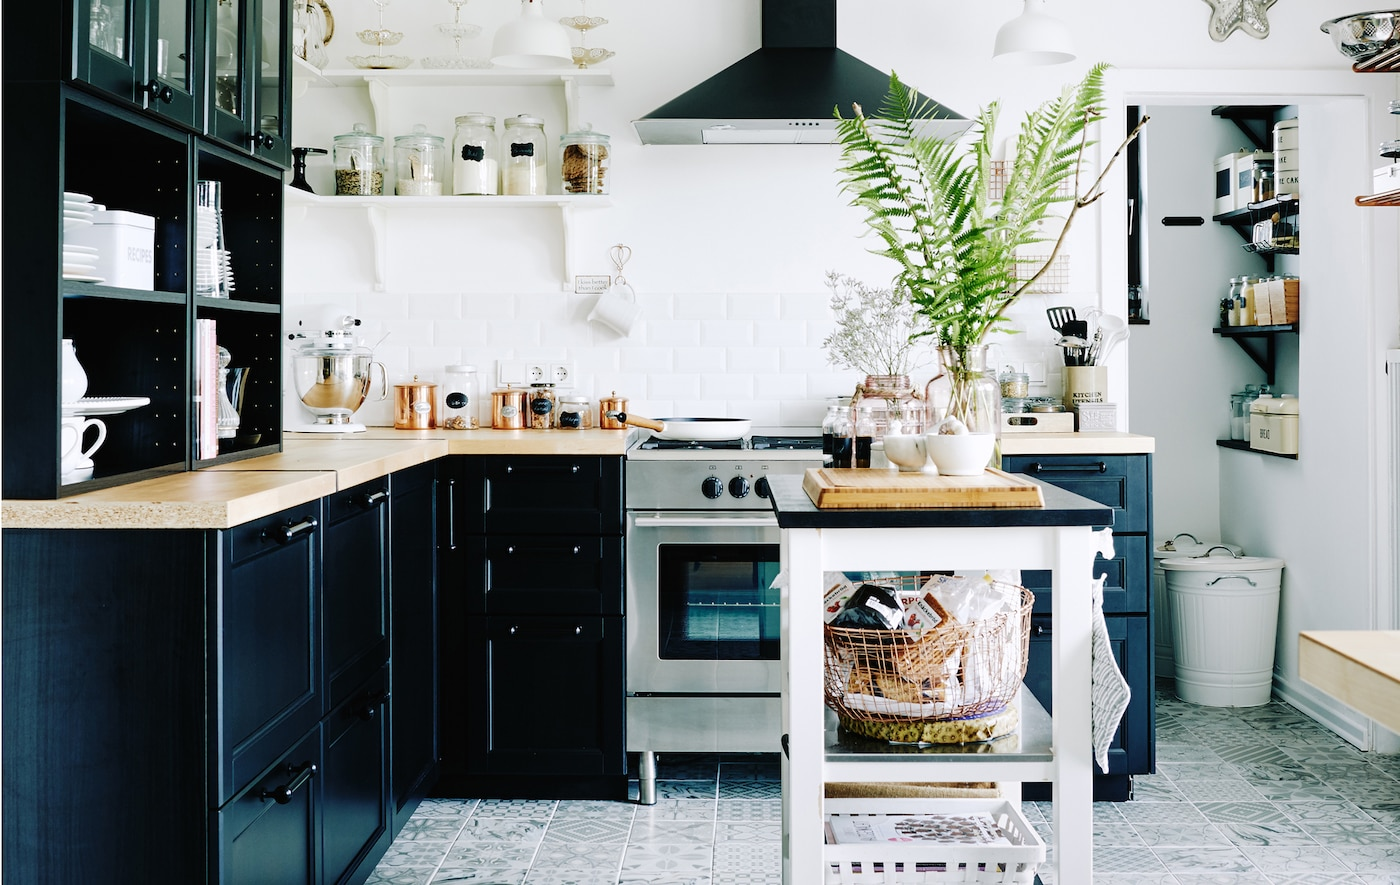 Black and white kitchen with pantry area packed with storage solutions.